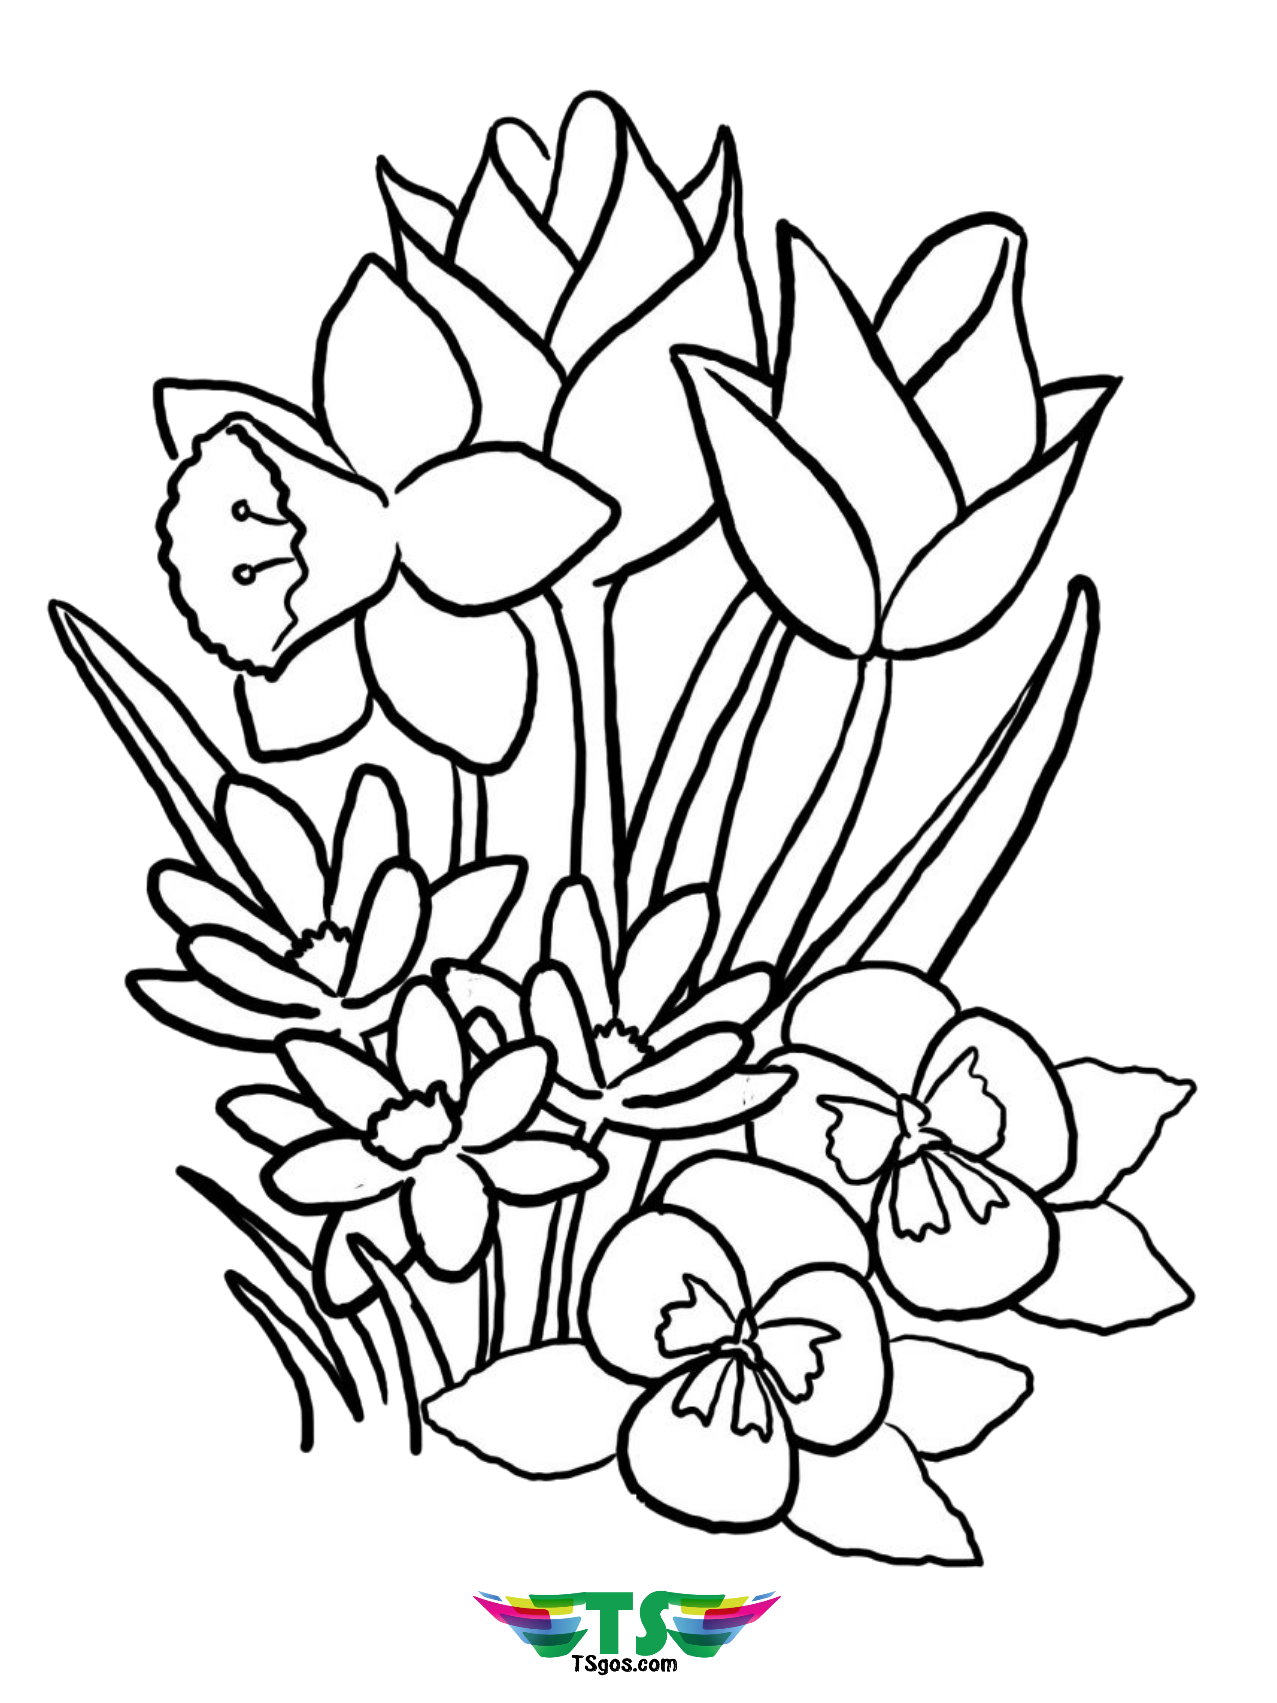 beautiful flowers coloring pages rose flower for beautiful lady coloring page download pages flowers beautiful coloring